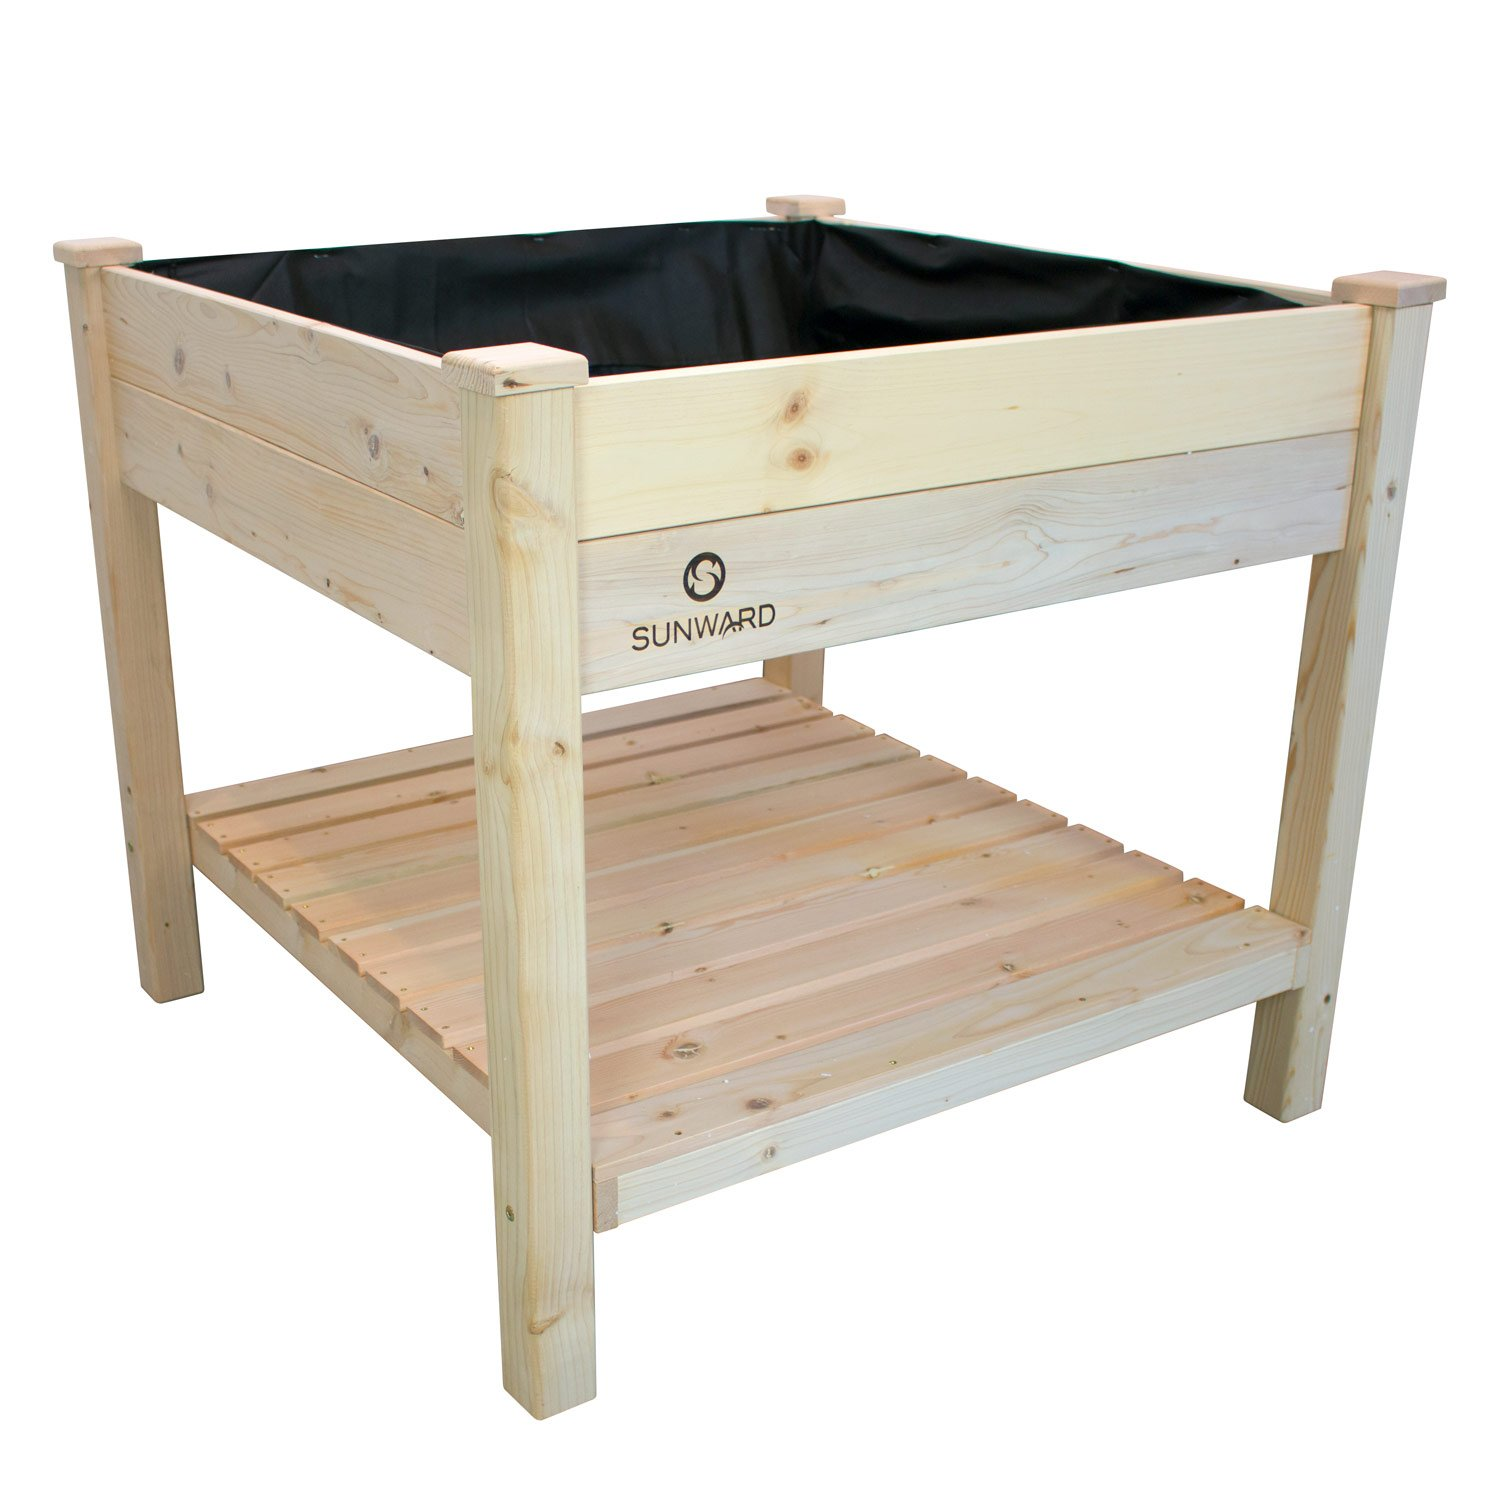 Sunward Patio Wooden Raised Garden Bed Kit